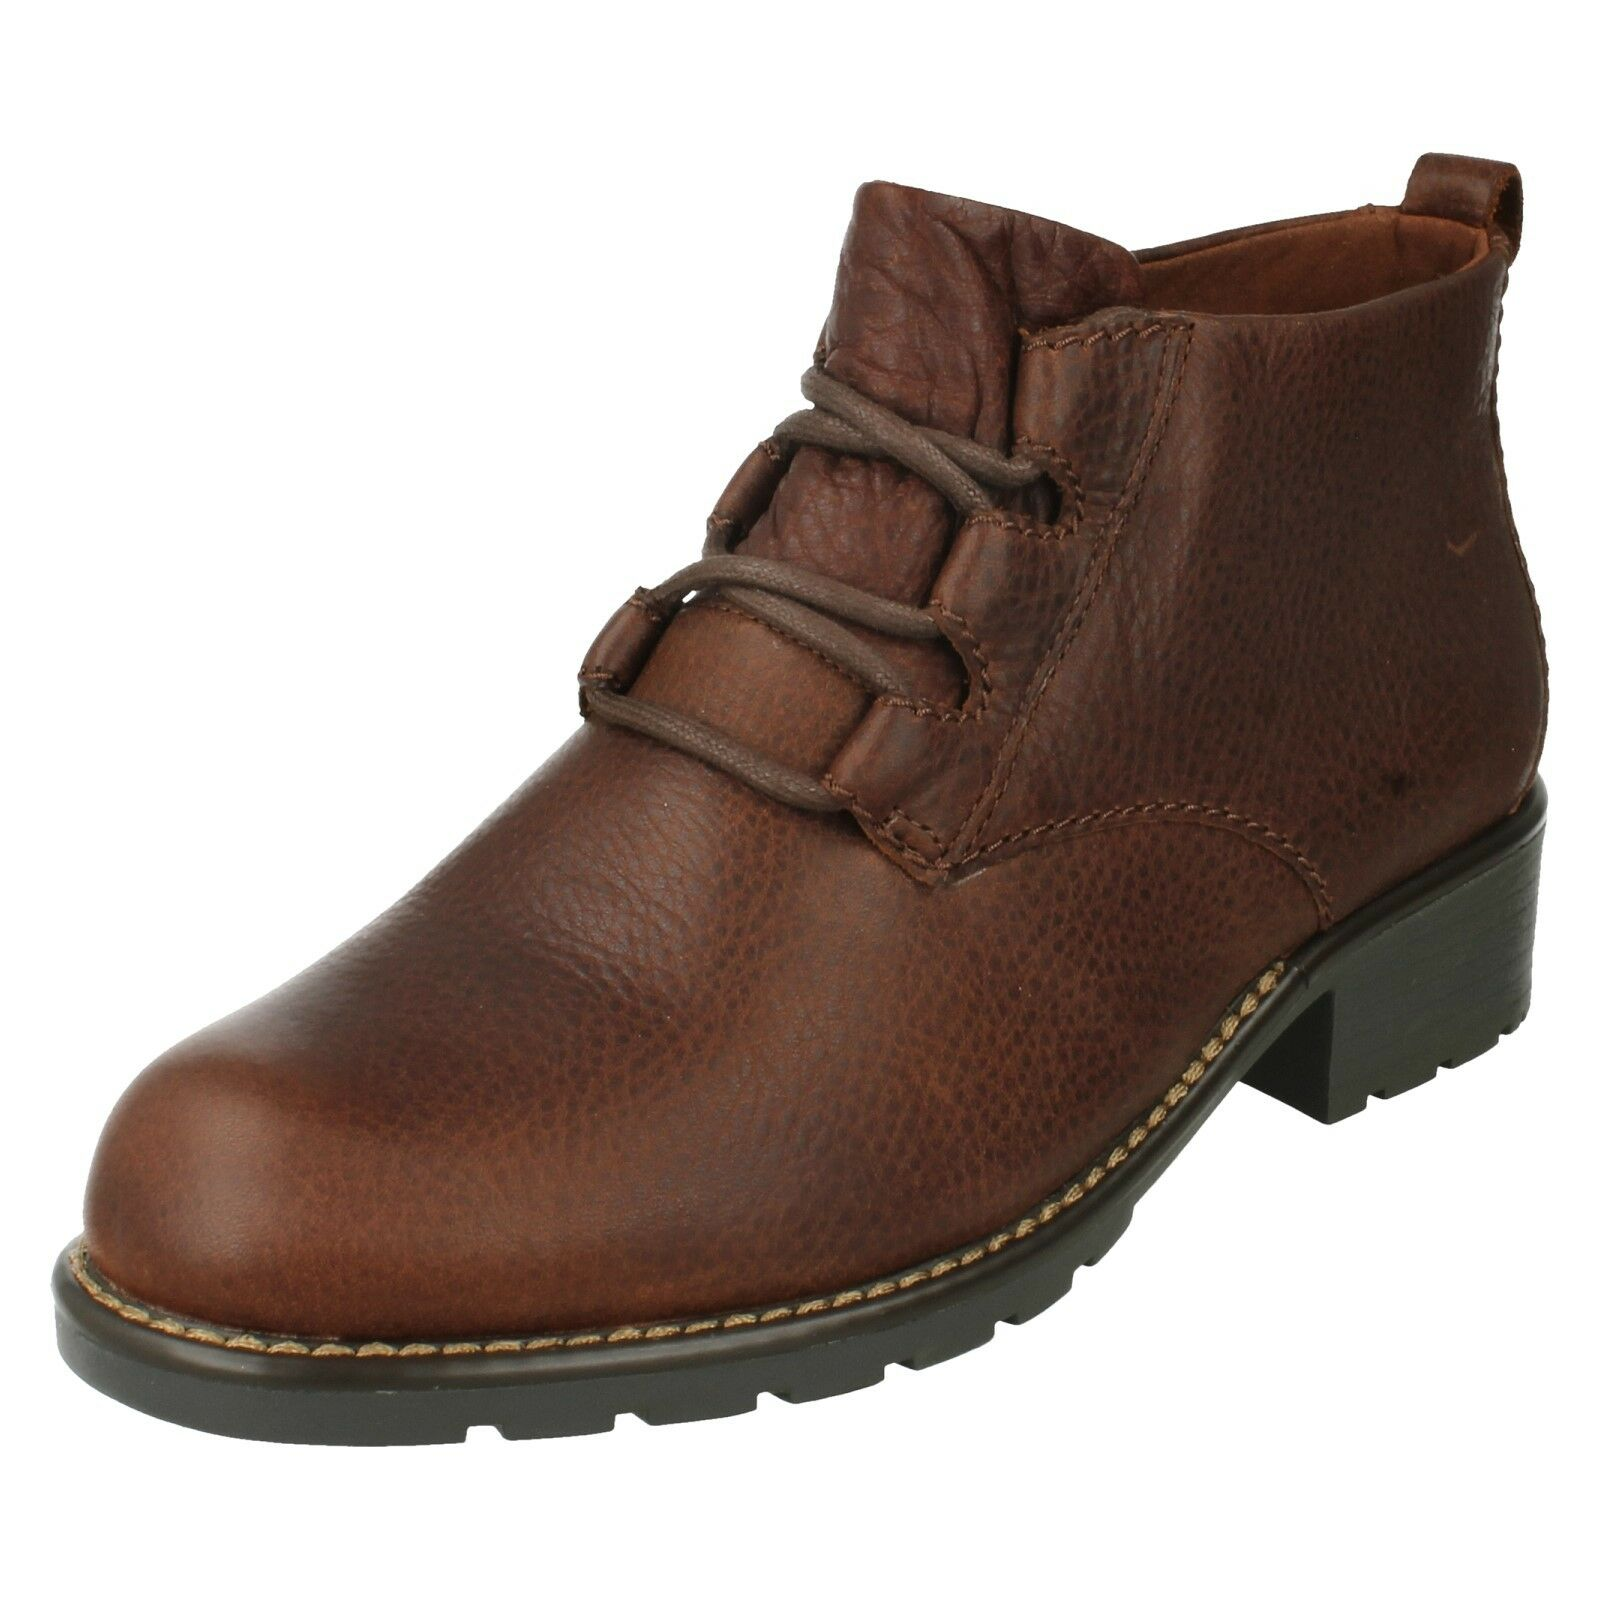 LADIES CLARKS  HEELED WARM LINED CASUAL LEATHER LACE UP ANKLE Stiefel ORINOCO OAKS